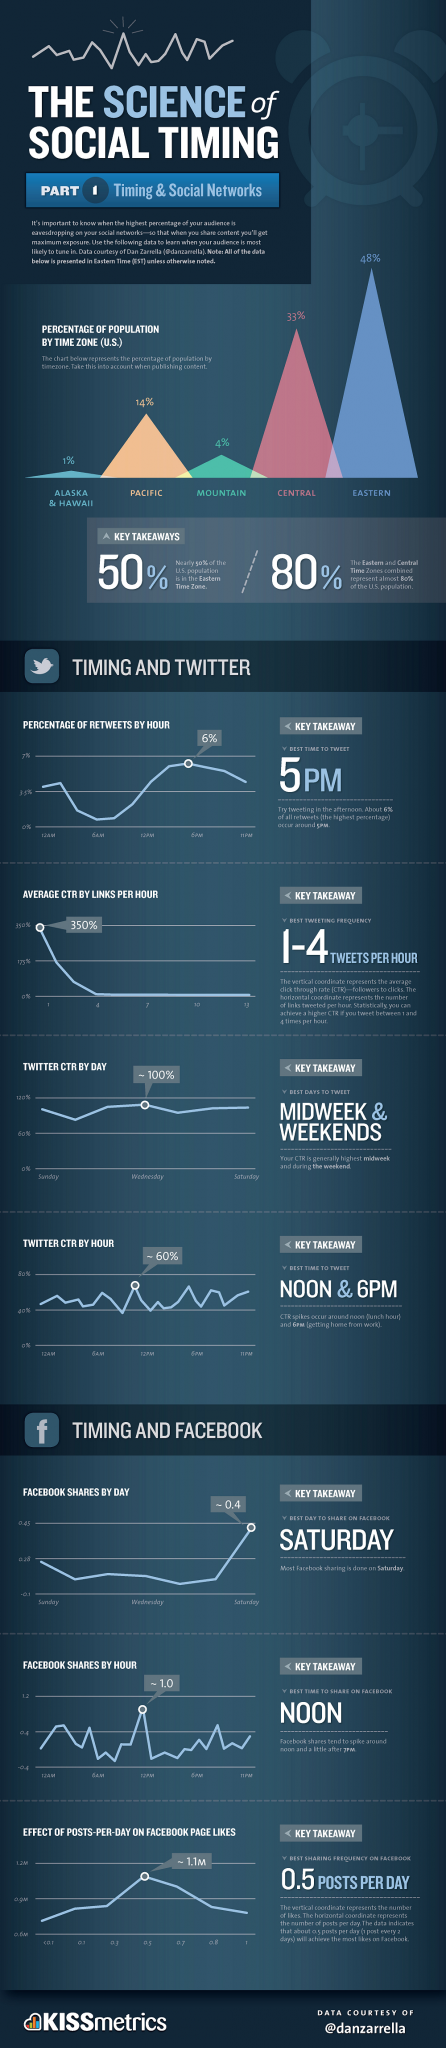 The Science of Social Media Timing by Kissmetrics